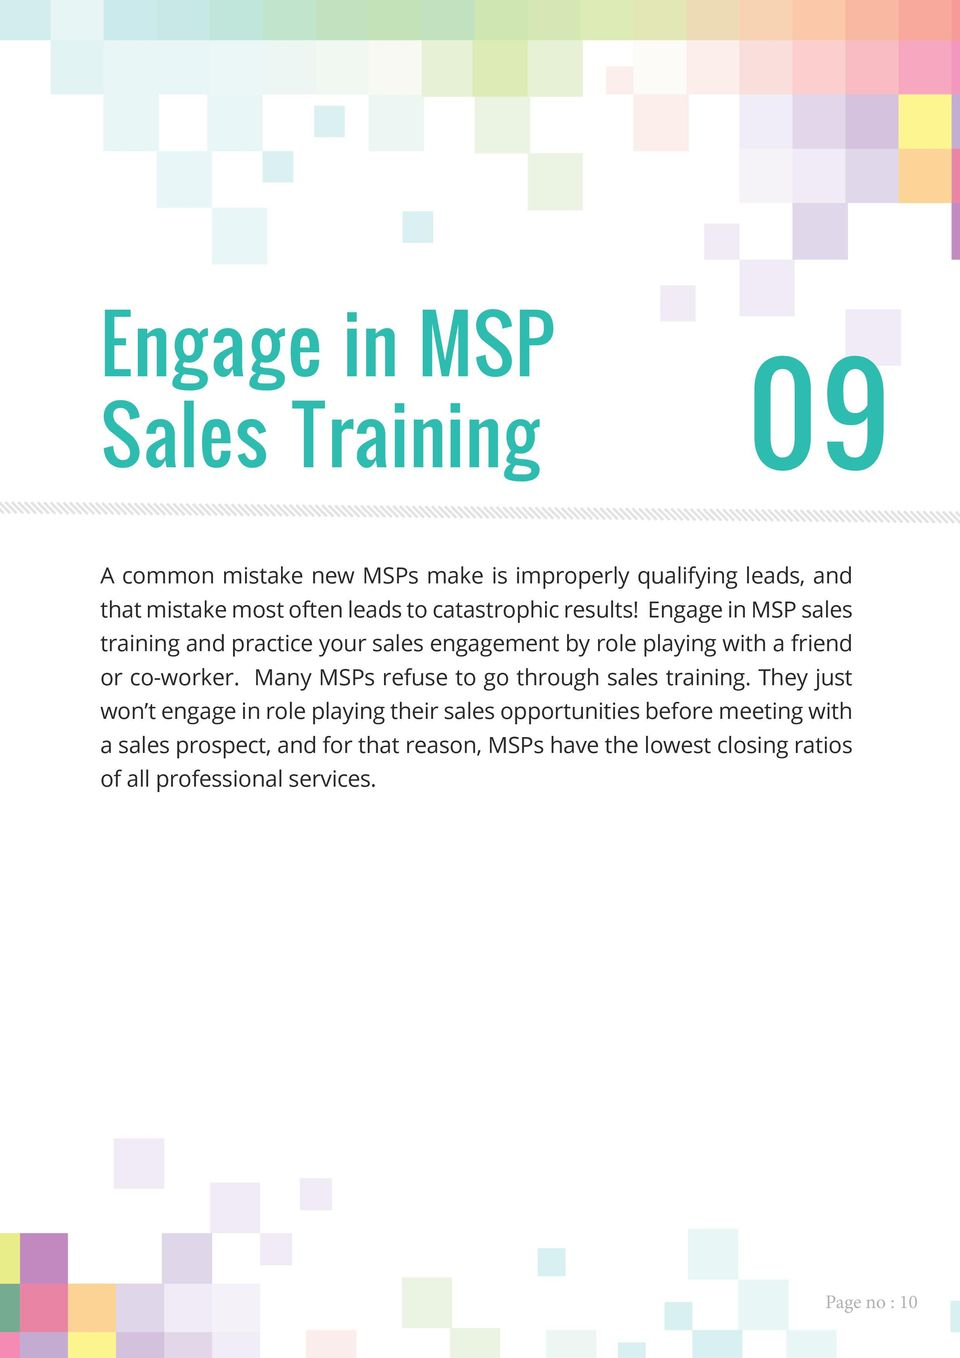 Engage in MSP sales training and practice your sales engagement by role playing with a friend or co-worker.